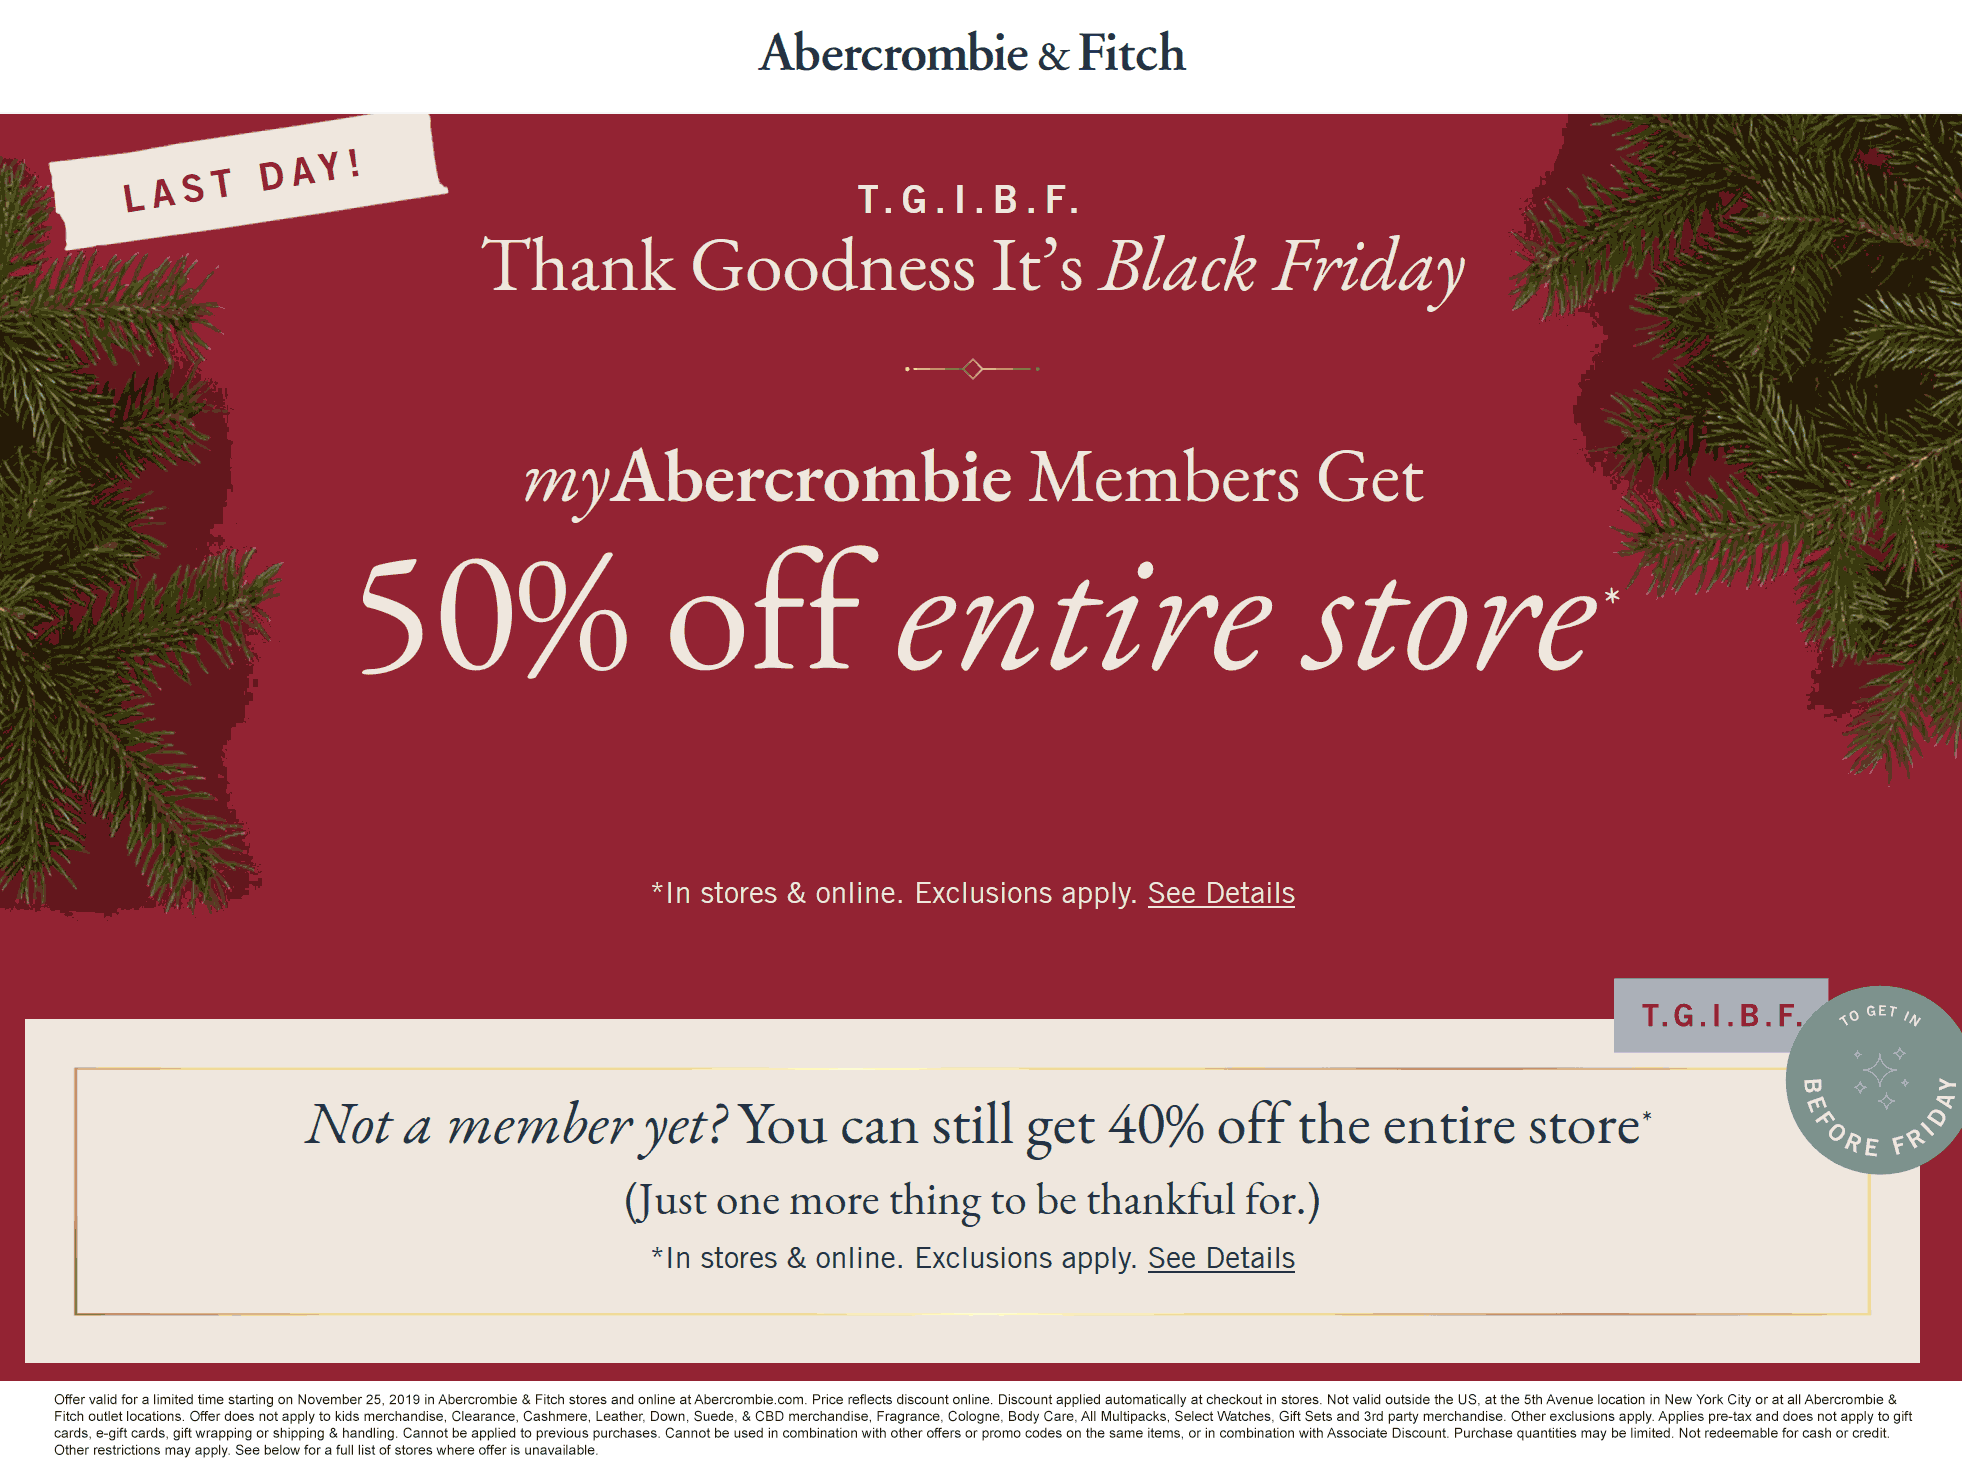 Abercrombie & Fitch coupons & promo code for [April 2020]